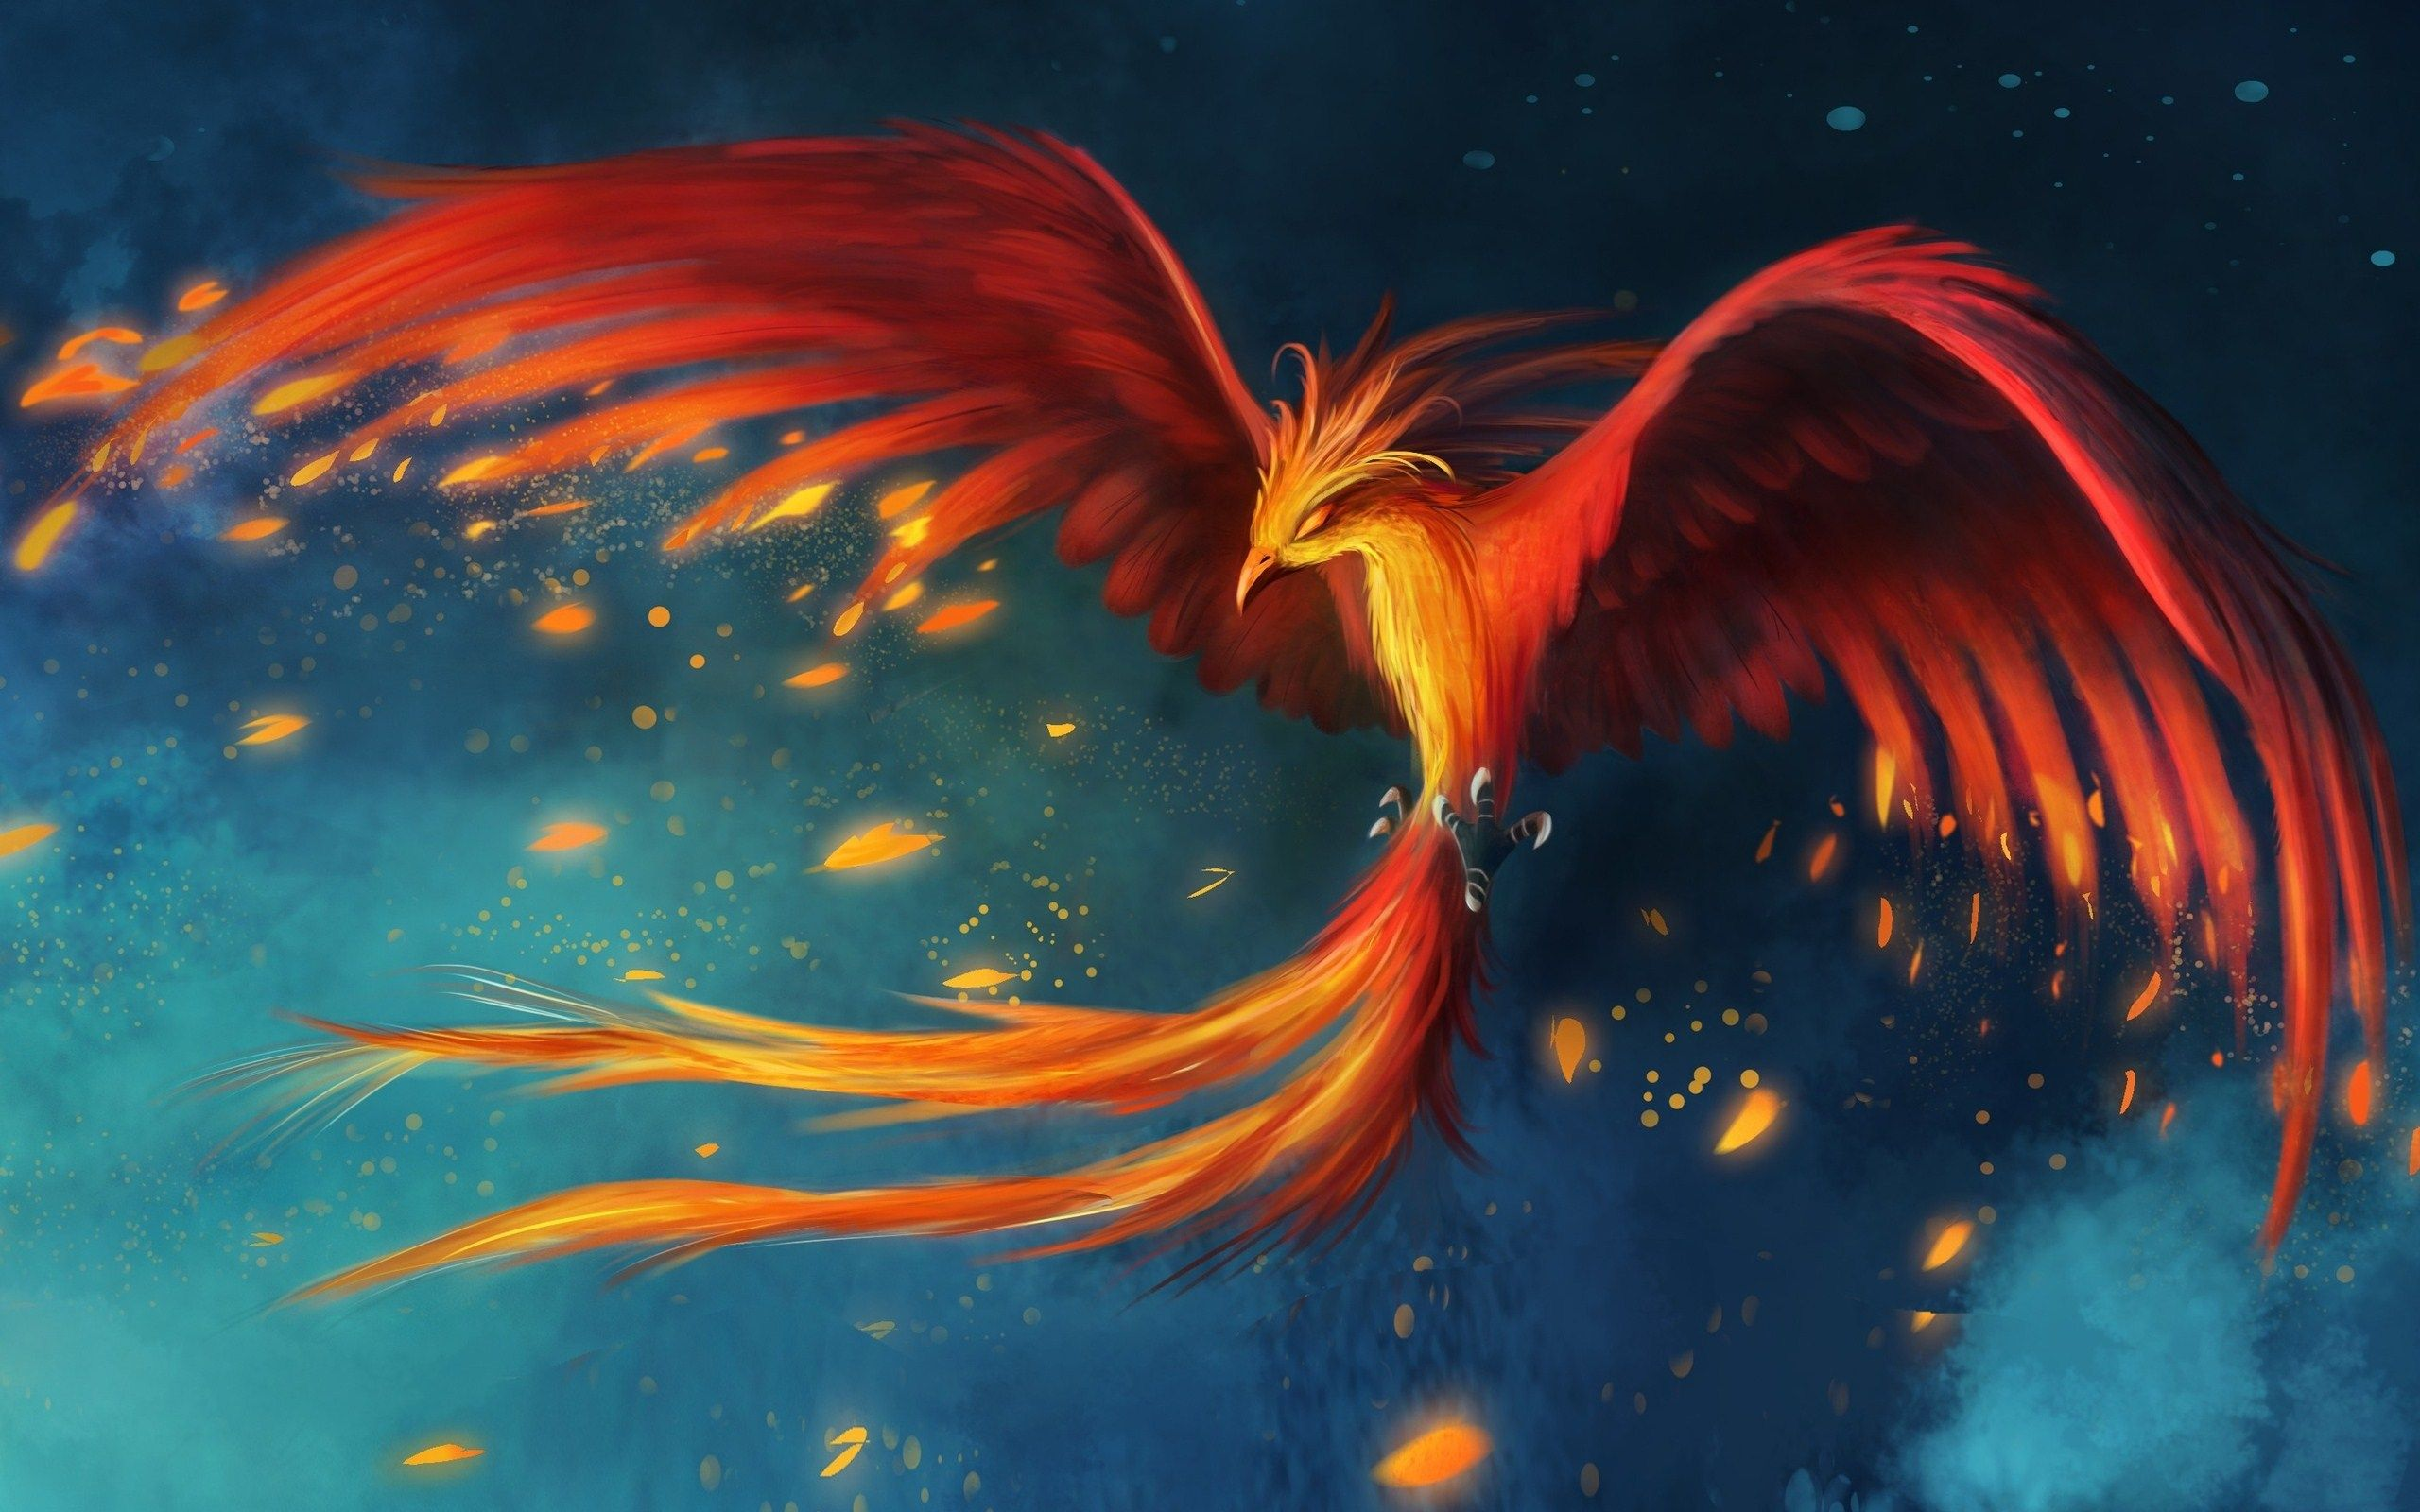 The Feather of Fire A Magical Phoenix RP NEEDS PLAYERS in 2560x1600